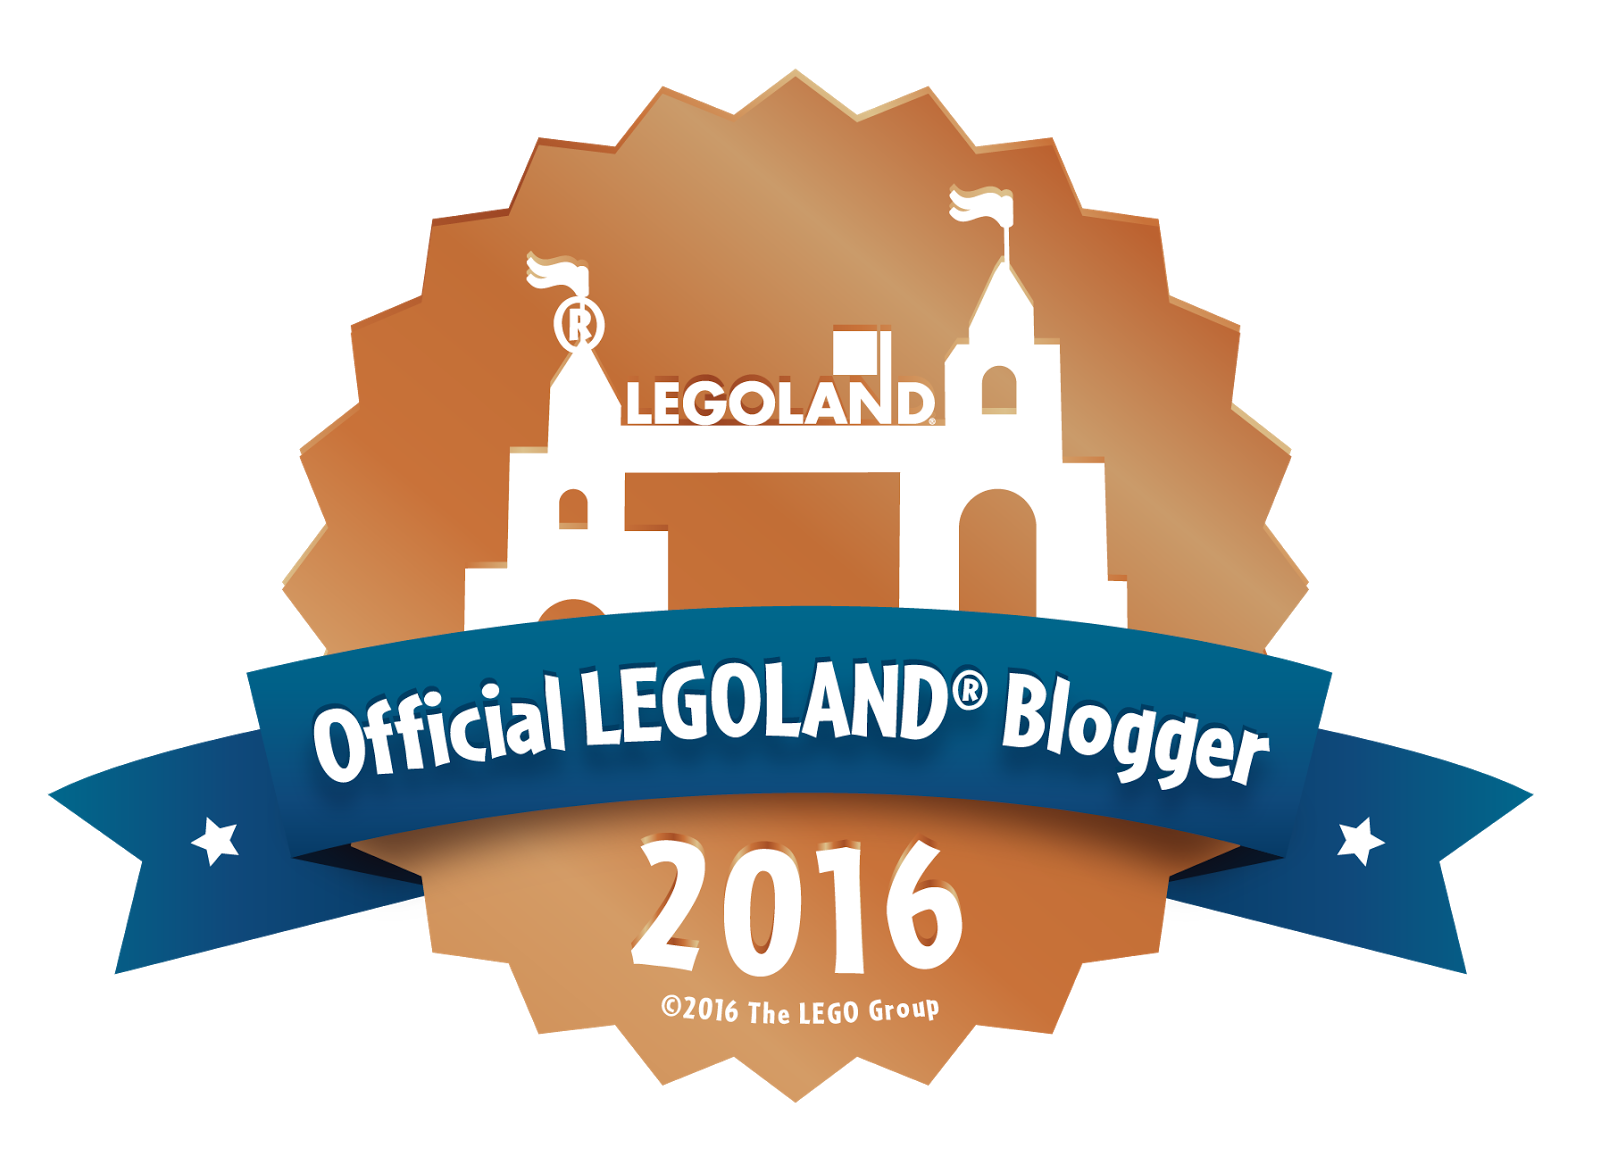 2016 Official Legoland Blogger